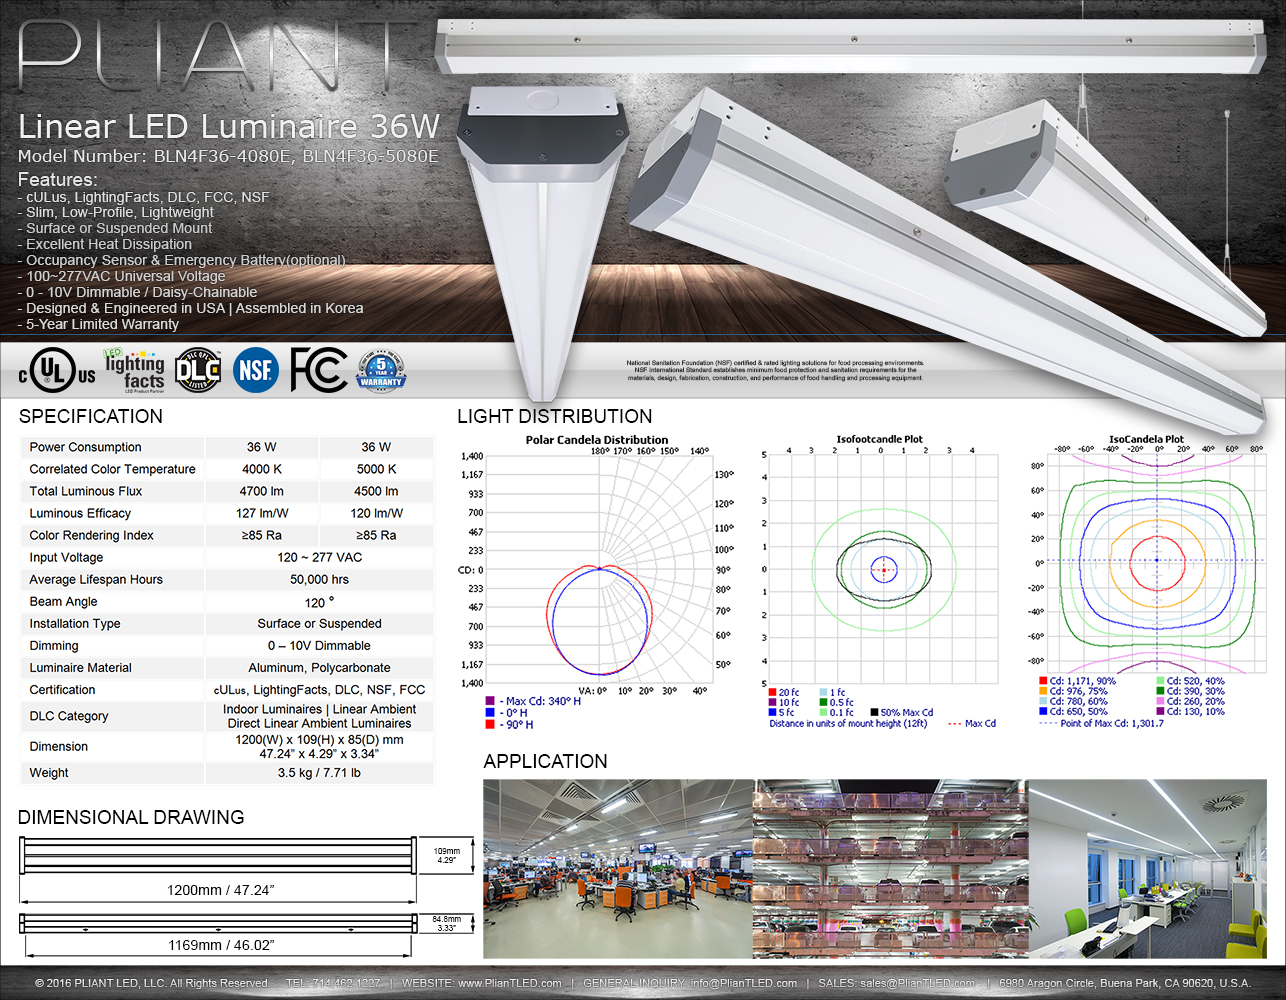 Linear LED Luminaire 36W PLIANT LED